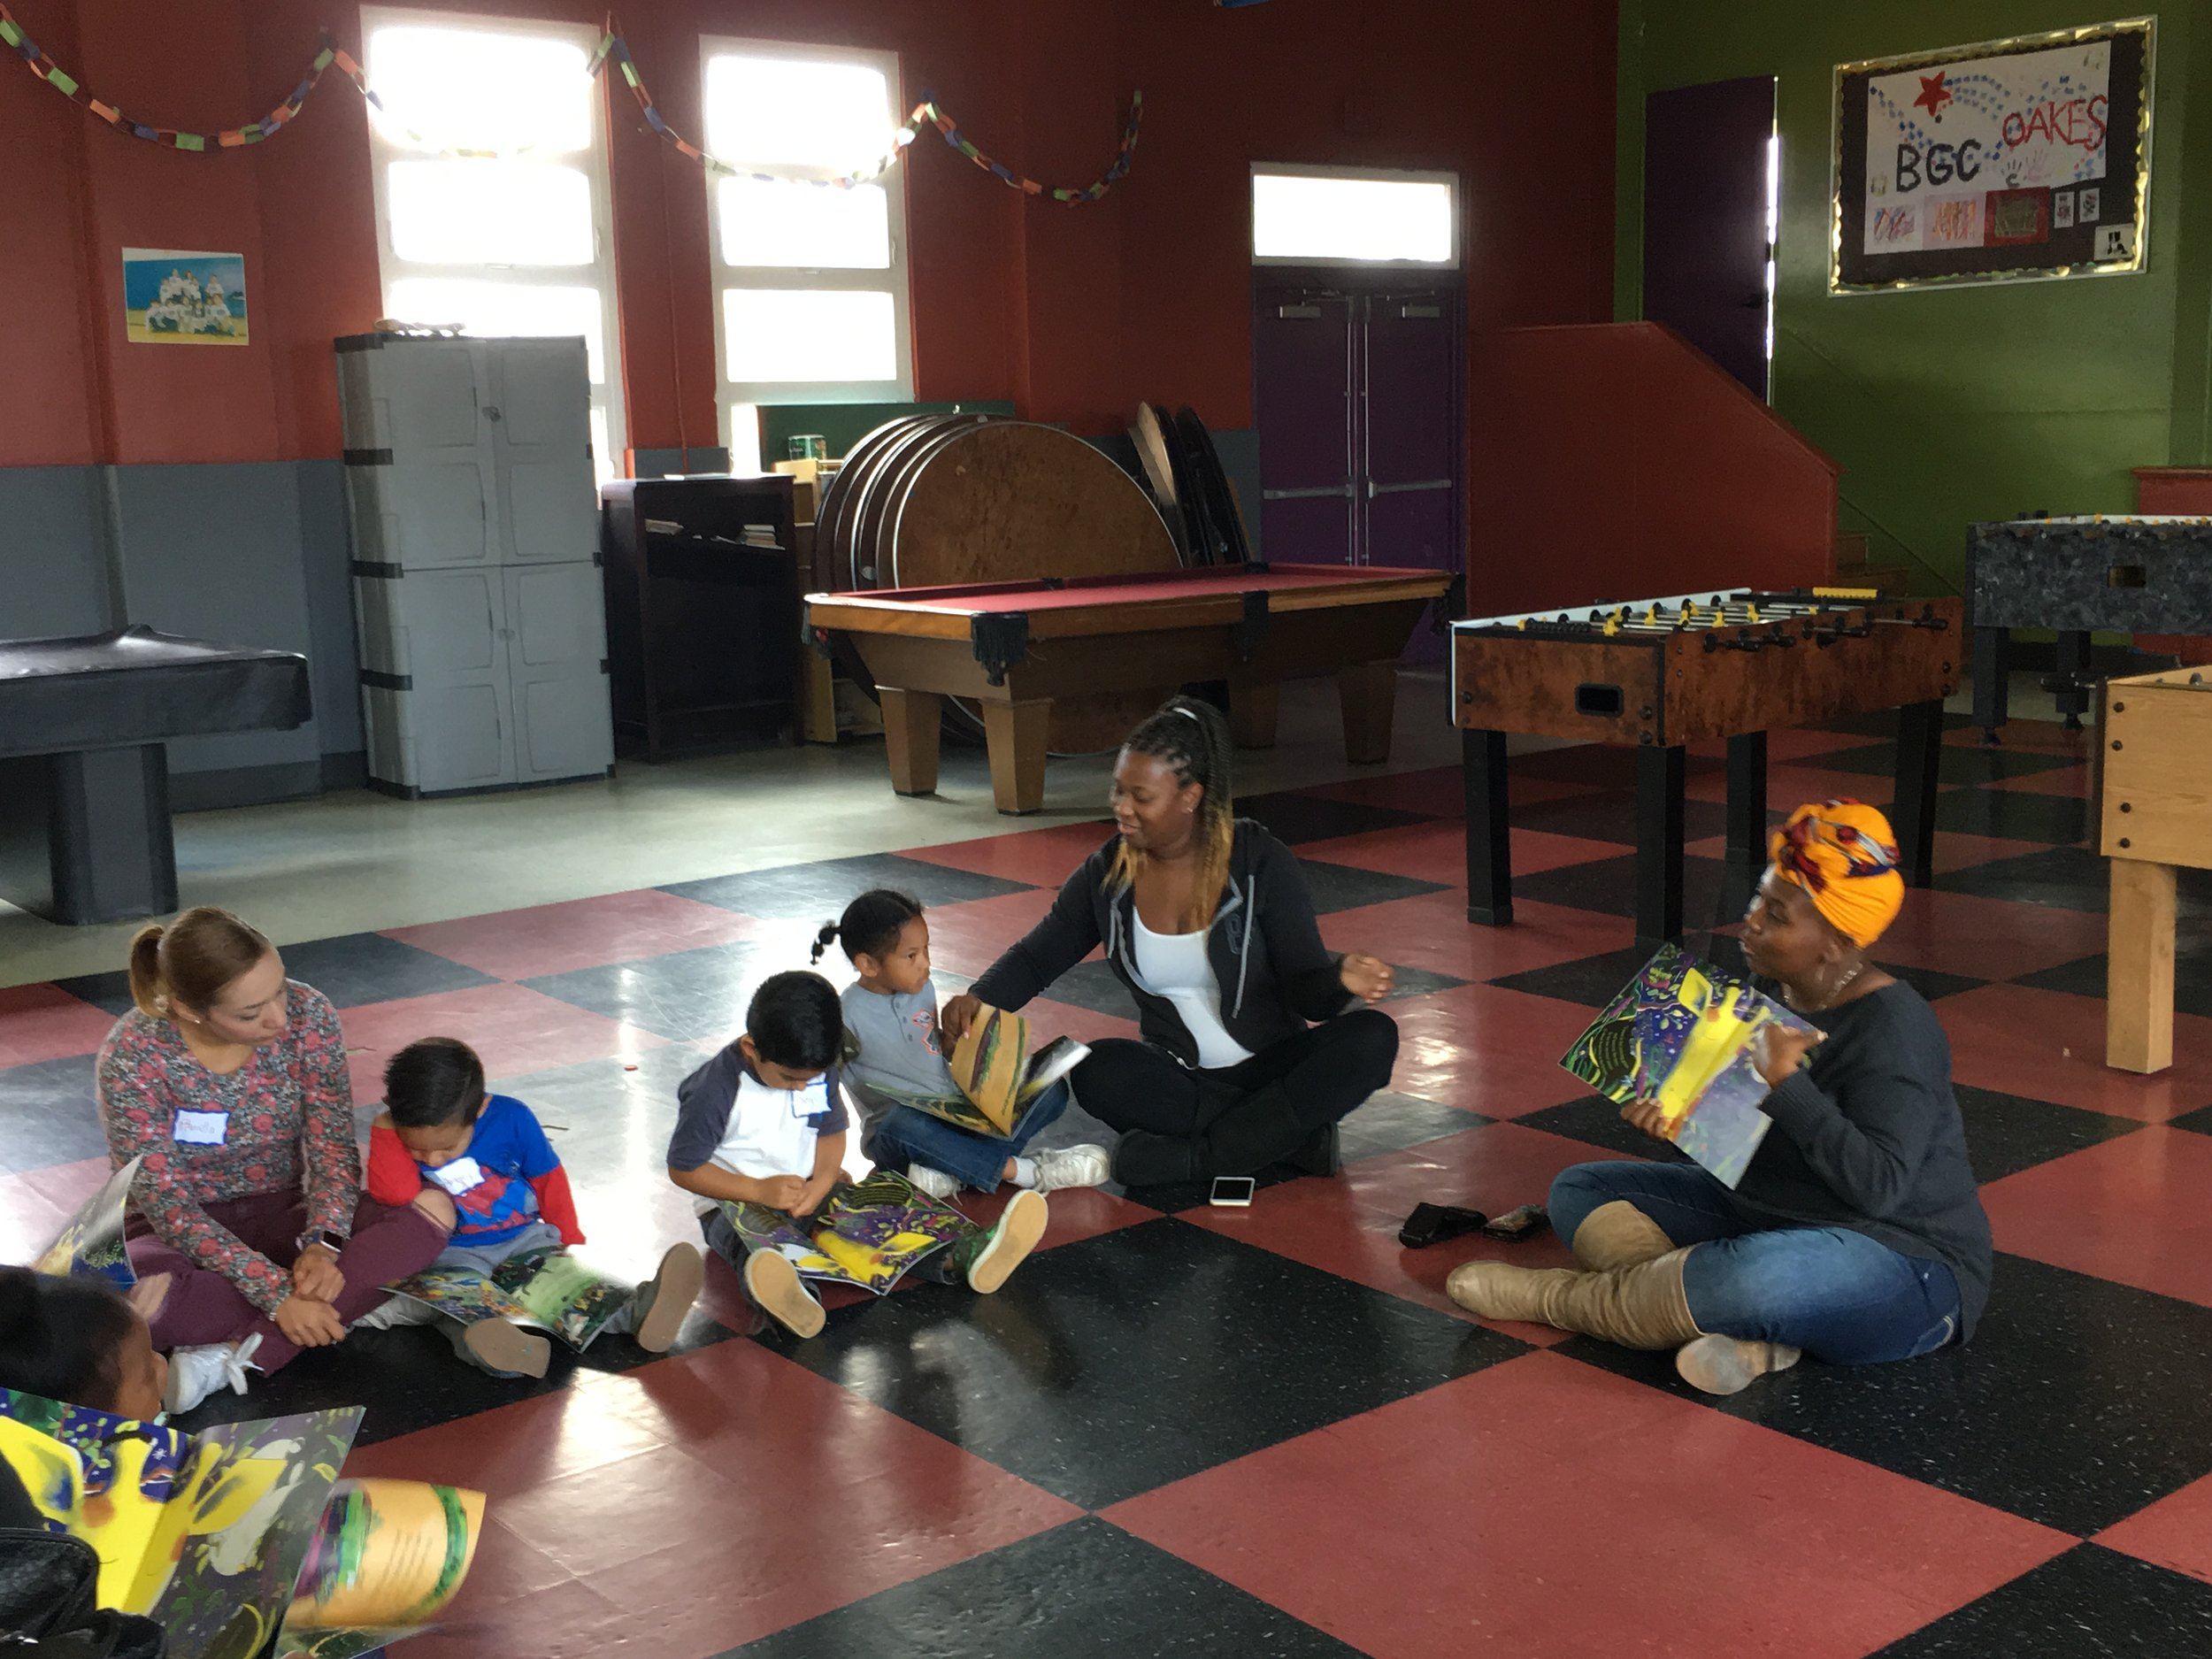 An image of Sheena facilitating a Family Literacy session. She is sitting on the floor with guardians and children while they all look at books together.